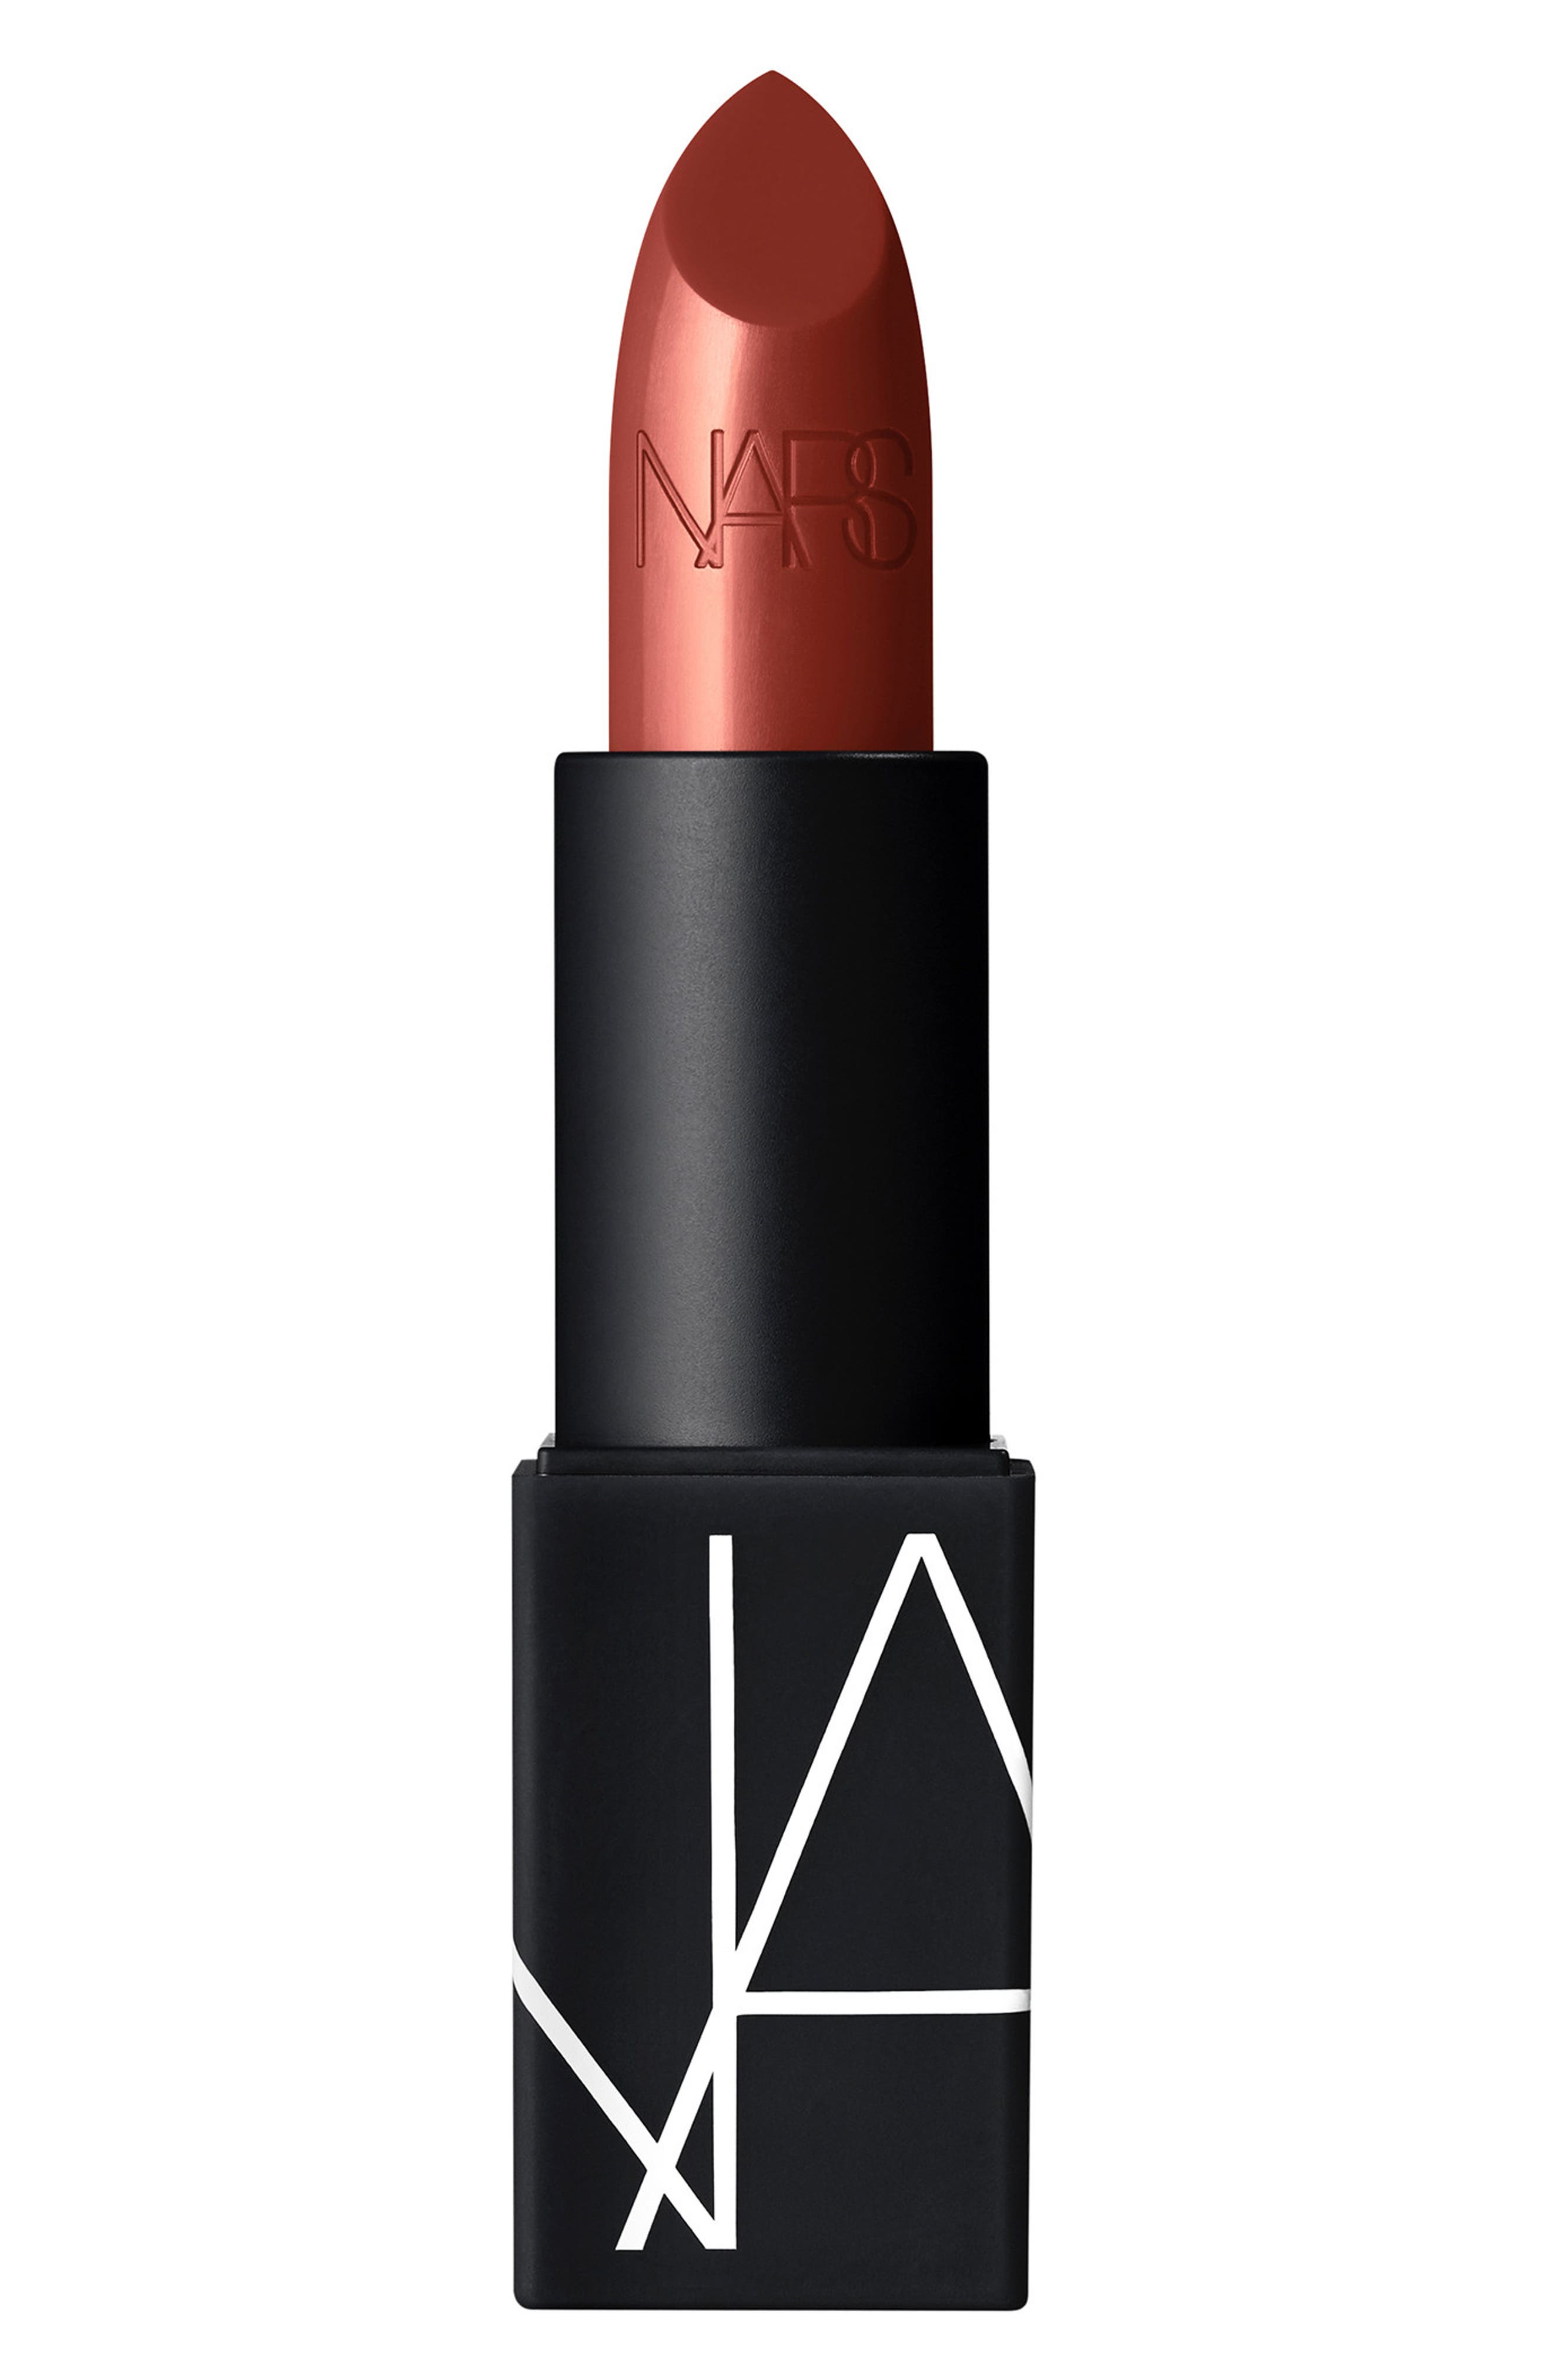 What it is: A lipstick in a subtle, sheer finish that shines, offering instant color vibrancy and conditioning lips for radically lightweight wear. What it does: This lipstick is formulated with a dynamic blend of moringa and passionfruit seed oils to enhance color vibrancy and condition lips for radically lightweight wear and an unprecedented feel. Its long-lasting color is resistant to bleed and feathering, while enhanced pigment dispersion